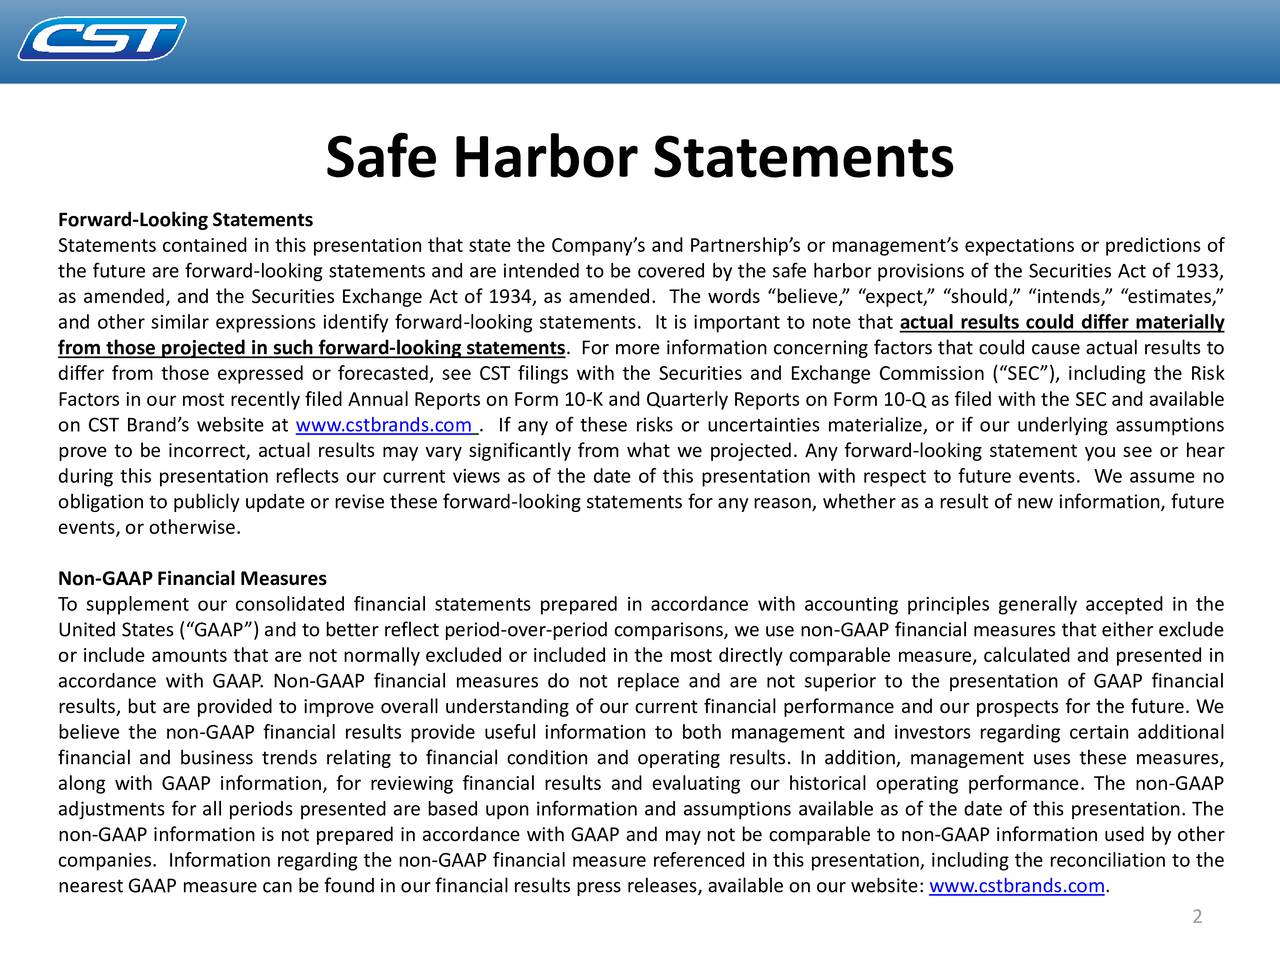 Forward-Looking Statements Statements contained in this presentation that state the Companys and Partnerships or managements expectations or predictions of the future are forward-looking statements and are intended to be covered by the safe harbor provisions of the Securities Act of 1933, as amended, and the Securities Exchange Act of 1934, as amended. The words believe, expect, should, intends, estimates, and other similar expressions identify forward-looking statements. It is important to note that actual results could differ materially from those projected in such forward-looking statements. For more information concerning factors that could cause actual results to differ from those expressed or forecasted, see CST filings with the Securities and Exchange Commission (SEC), including the Risk Factors in our most recently filed Annual Reports on Form 10-K and Quarterly Reports on Form 10-Q as filed with the SEC and available on CST Brands website at www.cstbrands.com . If any of these risks or uncertainties materialize, or if our underlying assumptions prove to be incorrect, actual results may vary significantly from what we projected. Any forward-looking statement you see or hear during this presentation reflects our current views as of the date of this presentation with respect to future events. We assume no obligation to publicly update or revise these forward-looking statements for any reason, whether as a result of new information, future events,or otherwise. Non-GAAPFinancial Measures To supplement our consolidated financial statements prepared in accordance with accounting principles generally accepted in the United States (GAAP) and to better reflect period-over-period comparisons, we use non-GAAP financial measures that either exclude or include amounts that are not normally excluded or included in the most directly comparable measure, calculated and presented in accordance with GAAP. Non-GAAP financial measures do not replace and are not superior to the presentation of GAAP financial results, but are provided to improve overall understanding of our current financial performance and our prospects for the future. We believe the non-GAAP financial results provide useful information to both management and investors regarding certain additional financial and business trends relating to financial condition and operating results. In addition, management uses these measures, along with GAAP information, for reviewing financial results and evaluating our historical operating performance. The non-GAAP adjustments for all periods presented are based upon information and assumptions available as of the date of this presentation. The non-GAAP information is not prepared in accordance with GAAP and may not be comparable to non-GAAP information used by other companies. Information regarding the non-GAAP financial measure referenced in this presentation, including the reconciliation to the nearest GAAP measure can be foundin our financial results press releases, available on our website: www.cstbrands.com. 2